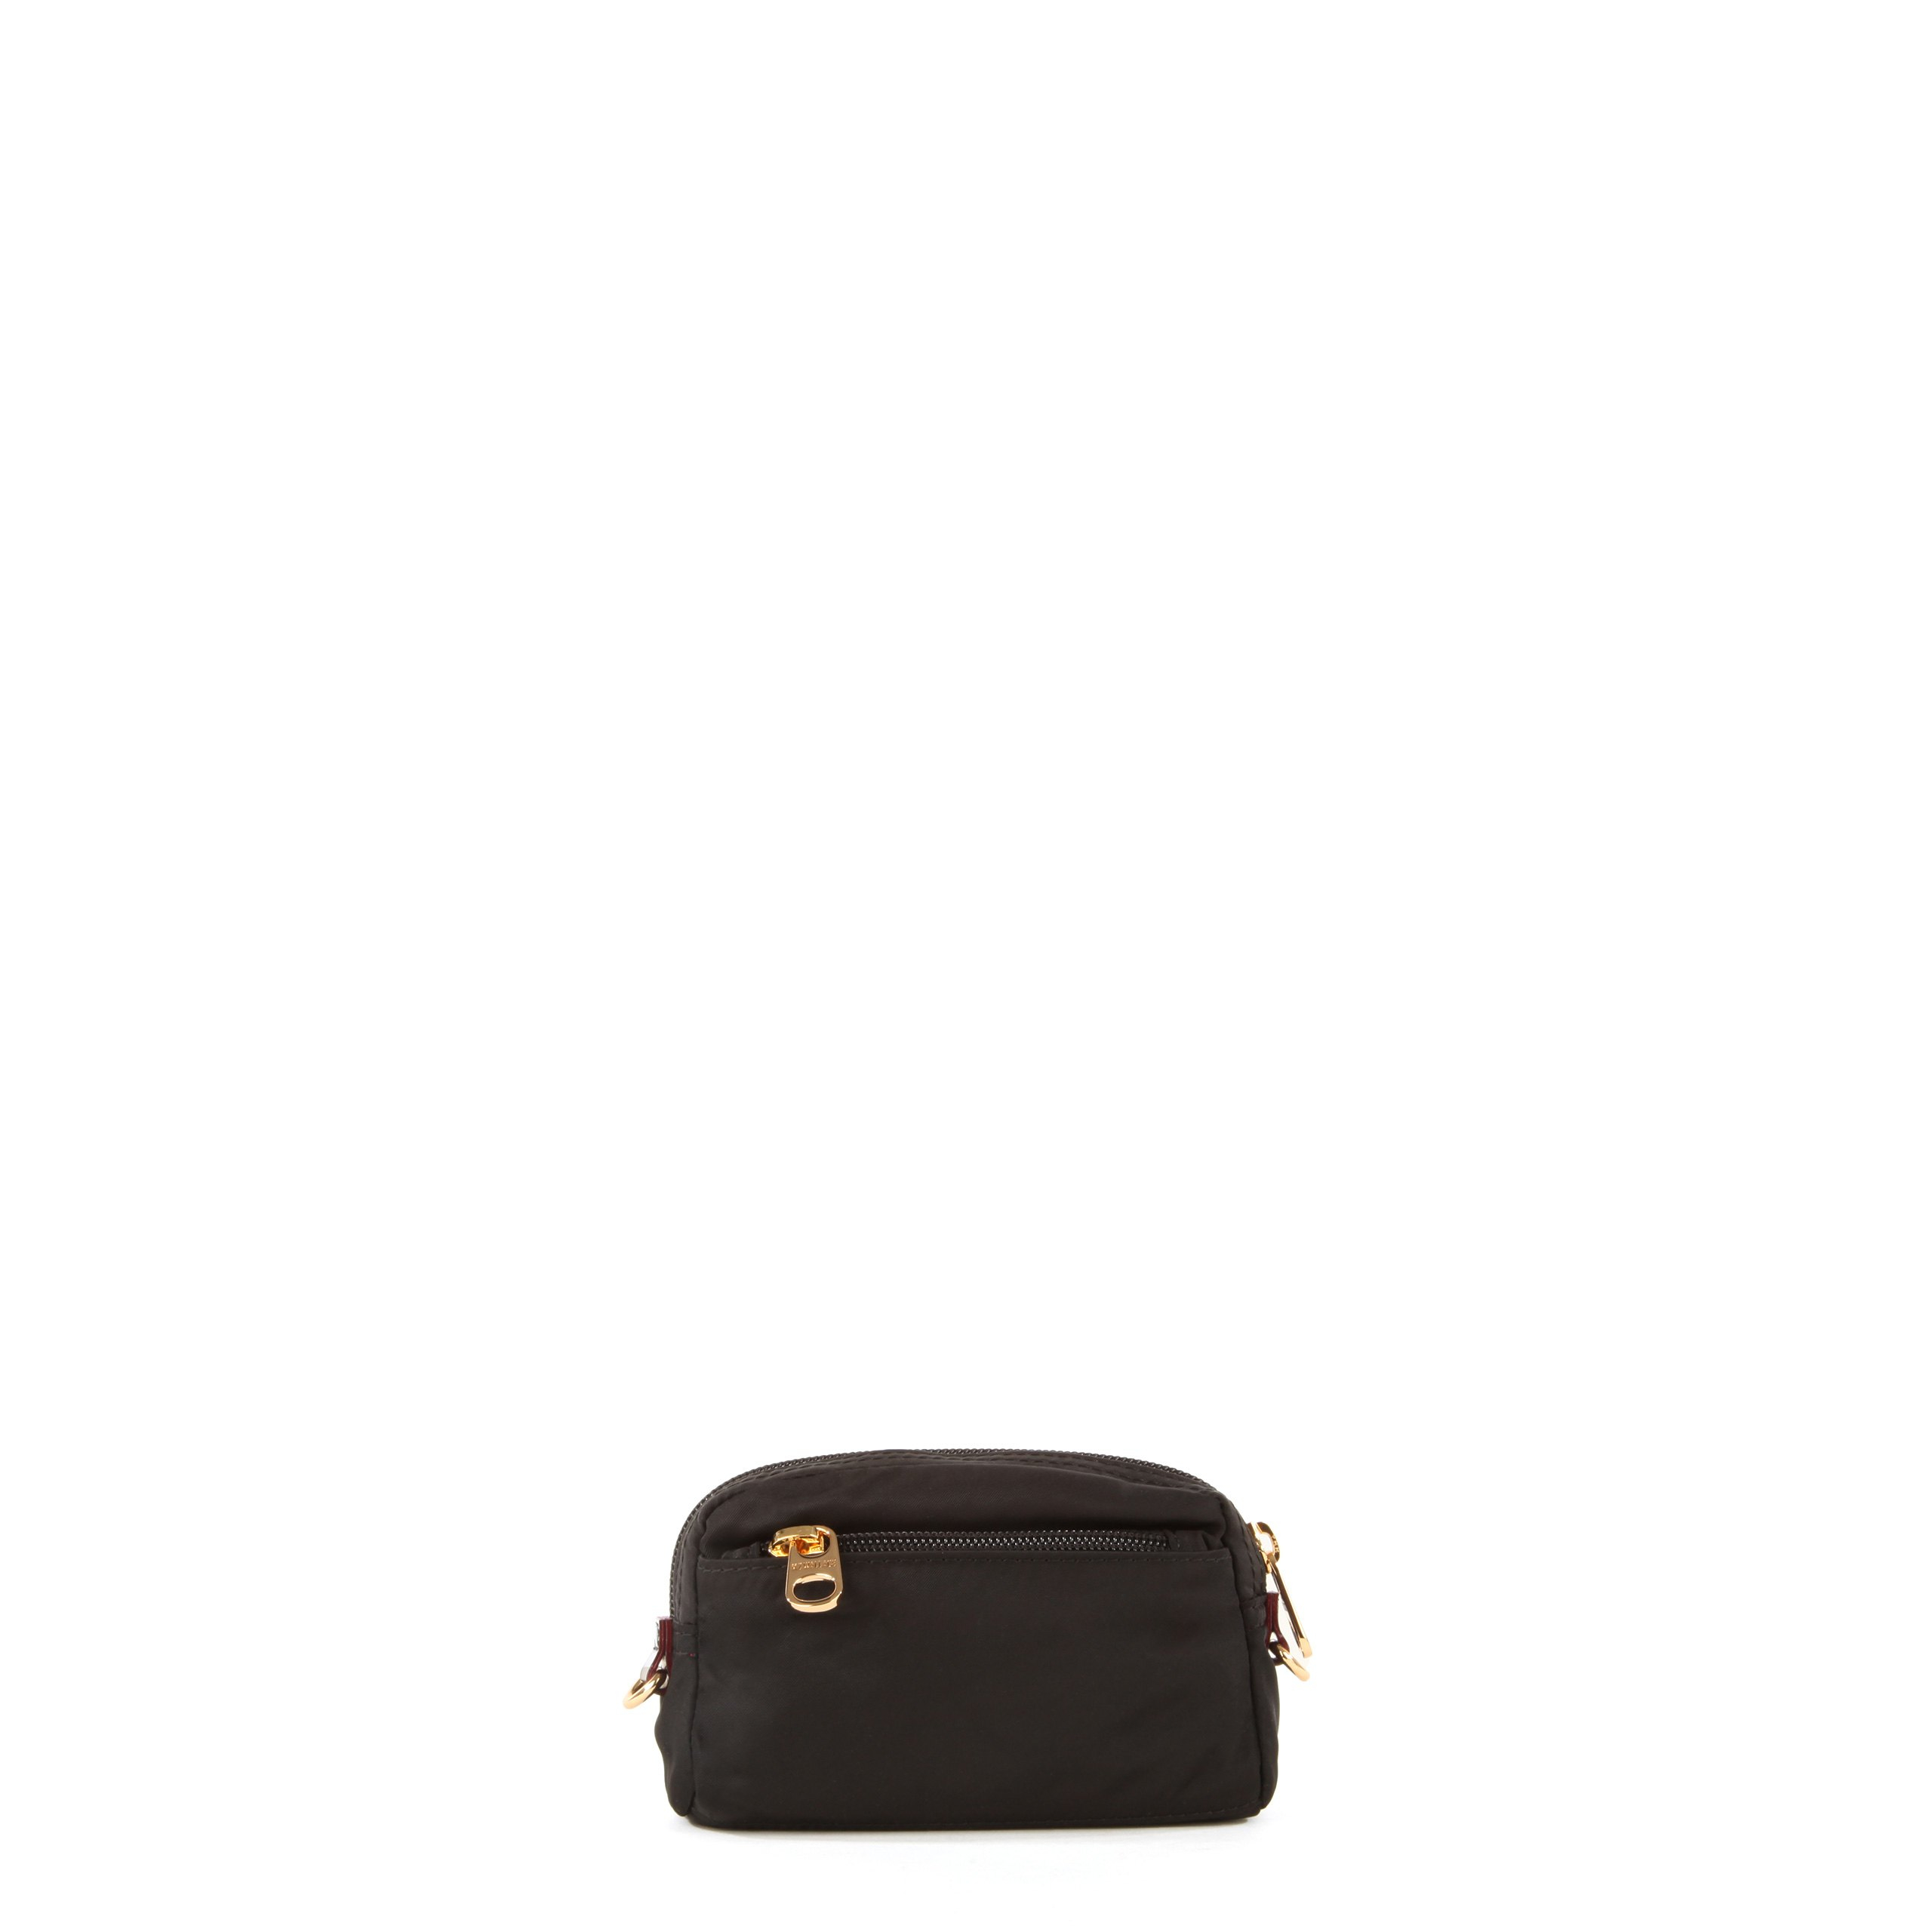 Lyst - MZ Wallace Small Savoy Cosmetic Black Bedford in Black 62018e67ab312